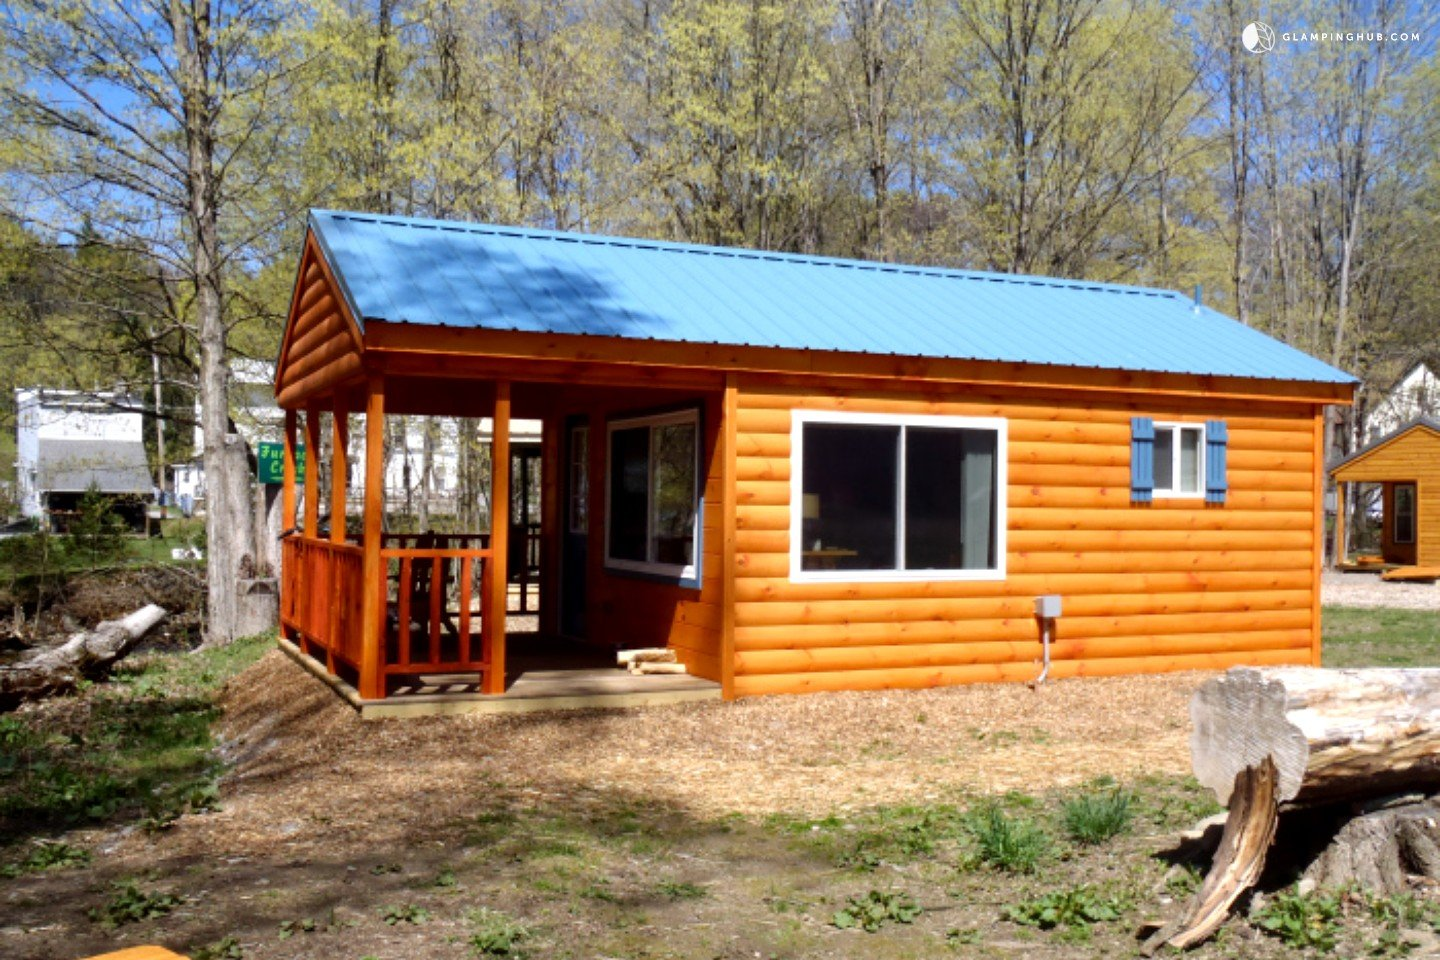 Romantic cabin getaway near syracuse upstate new york for Romantic weekend getaways in ny